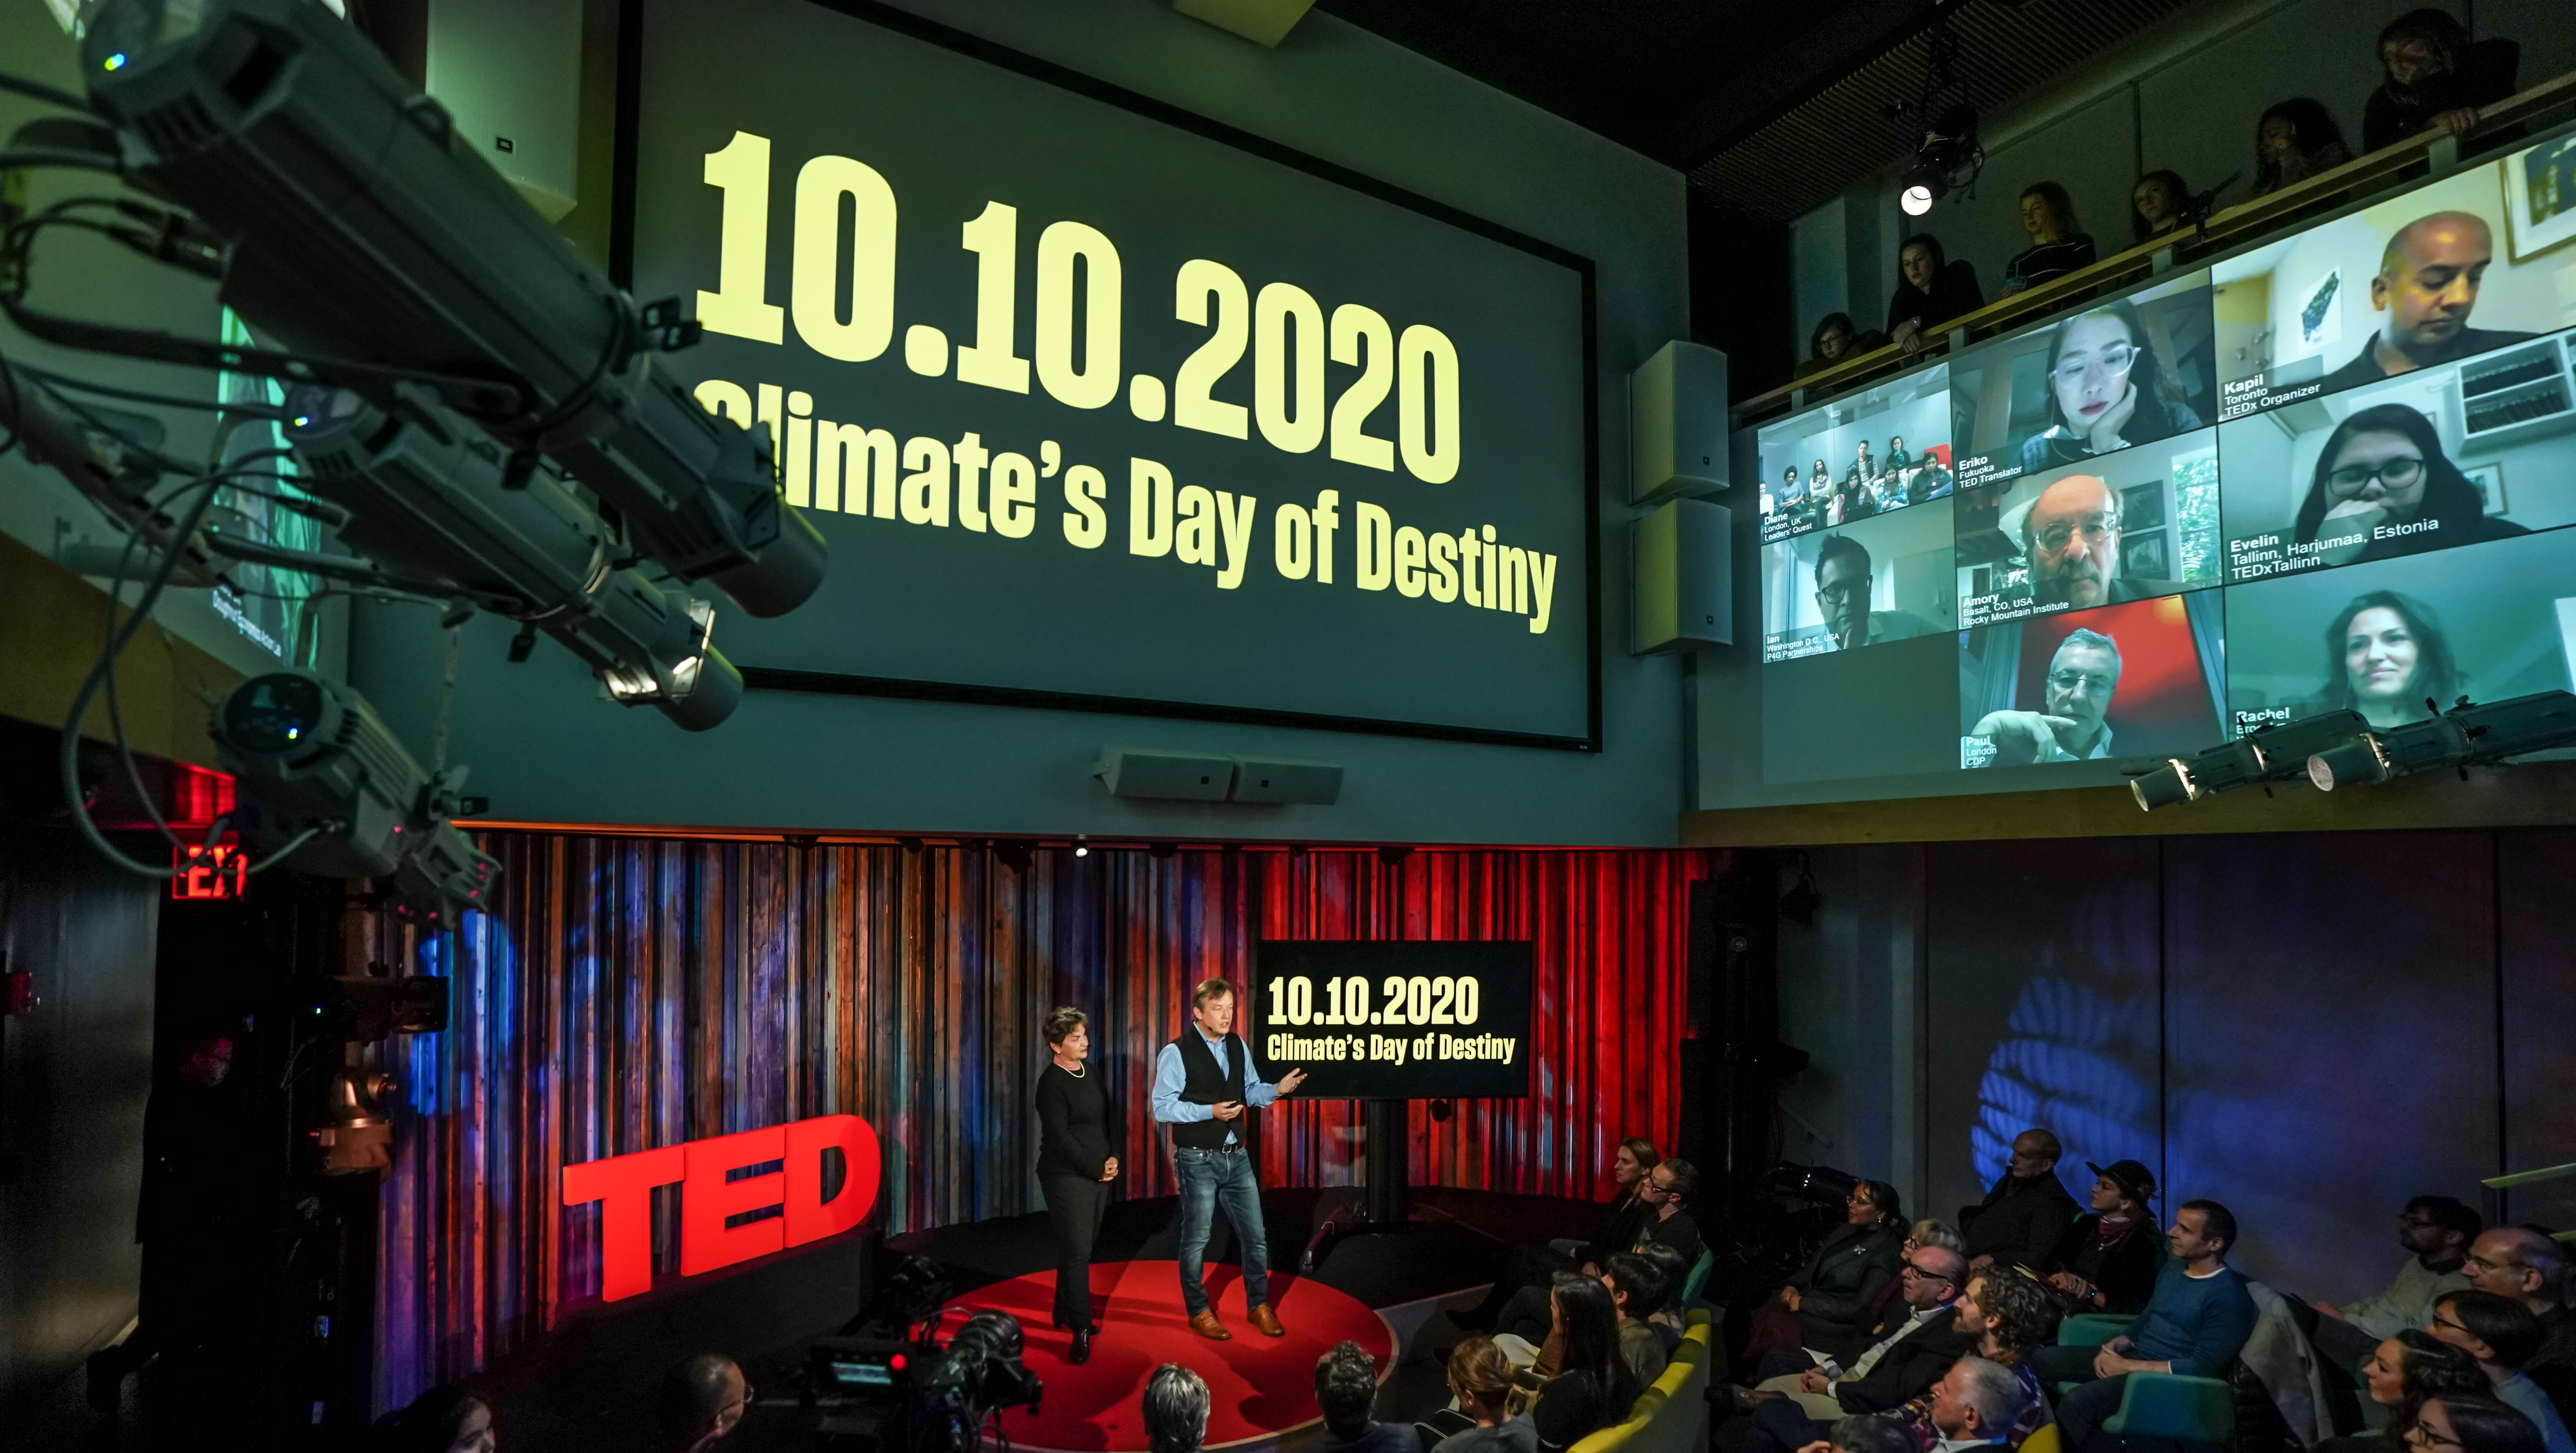 TED wants to become the global hub for the climate change crisis